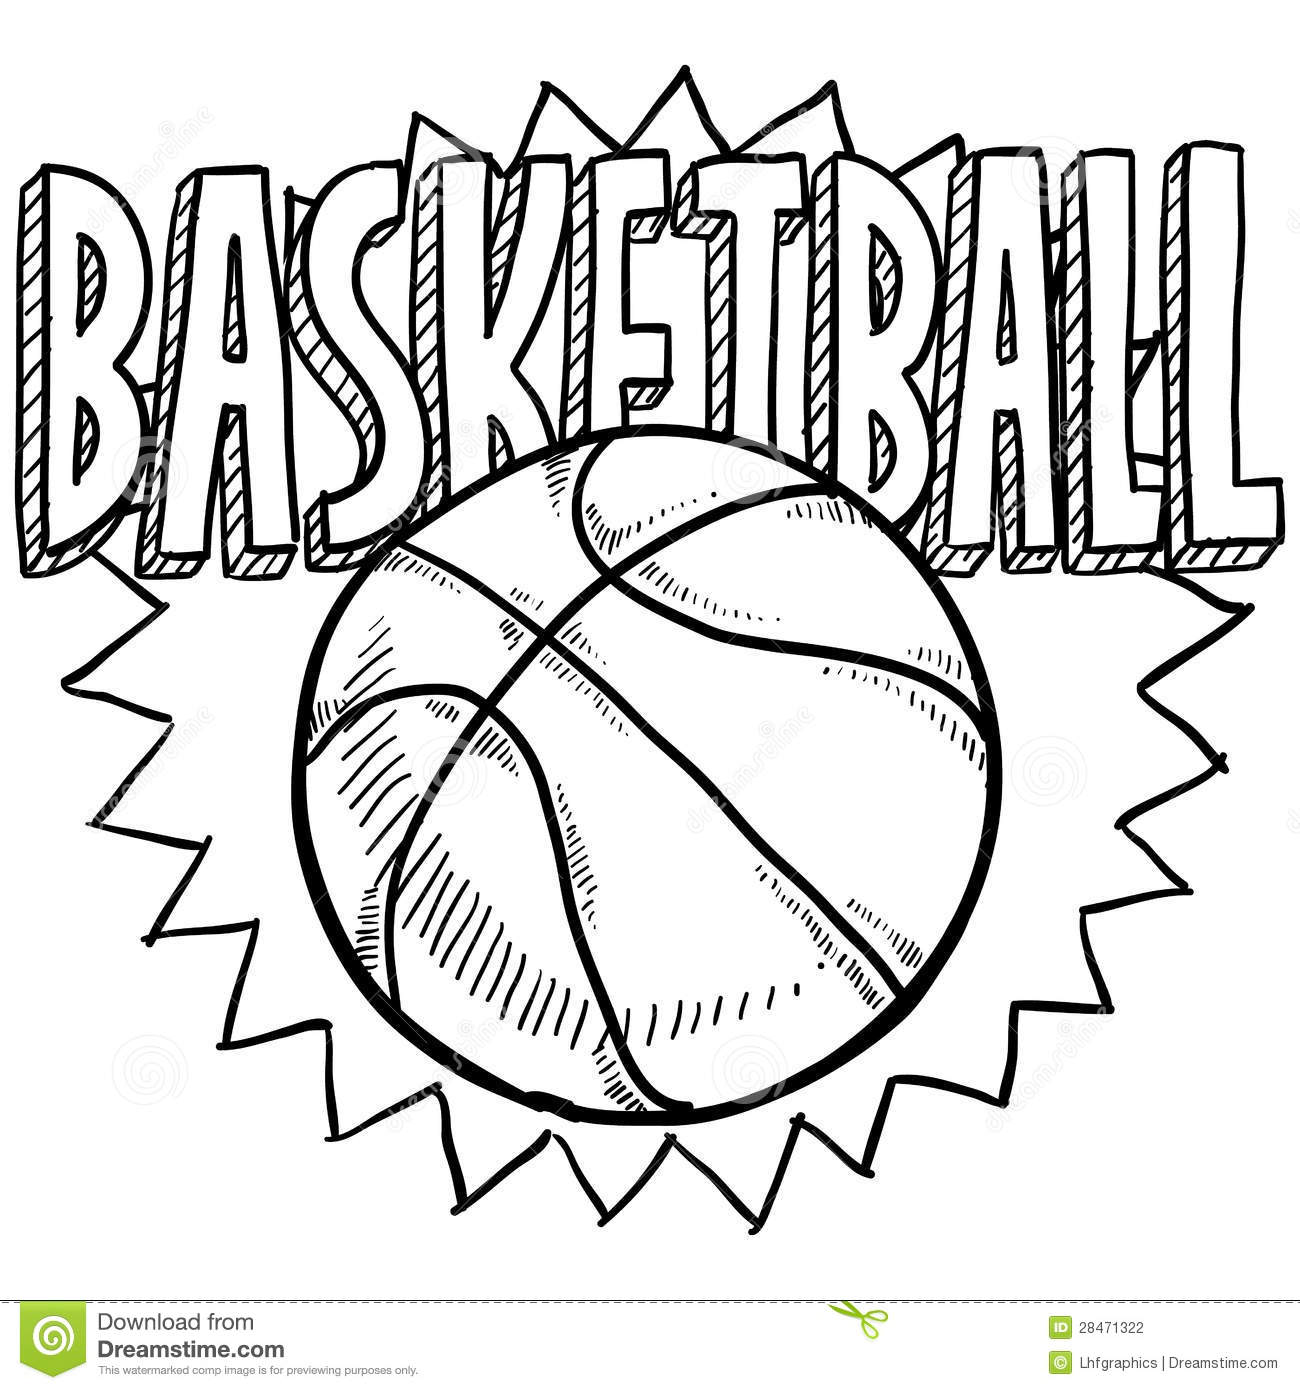 Basketball Sketch Stock Vector. Illustration Of Illustration - 28471322